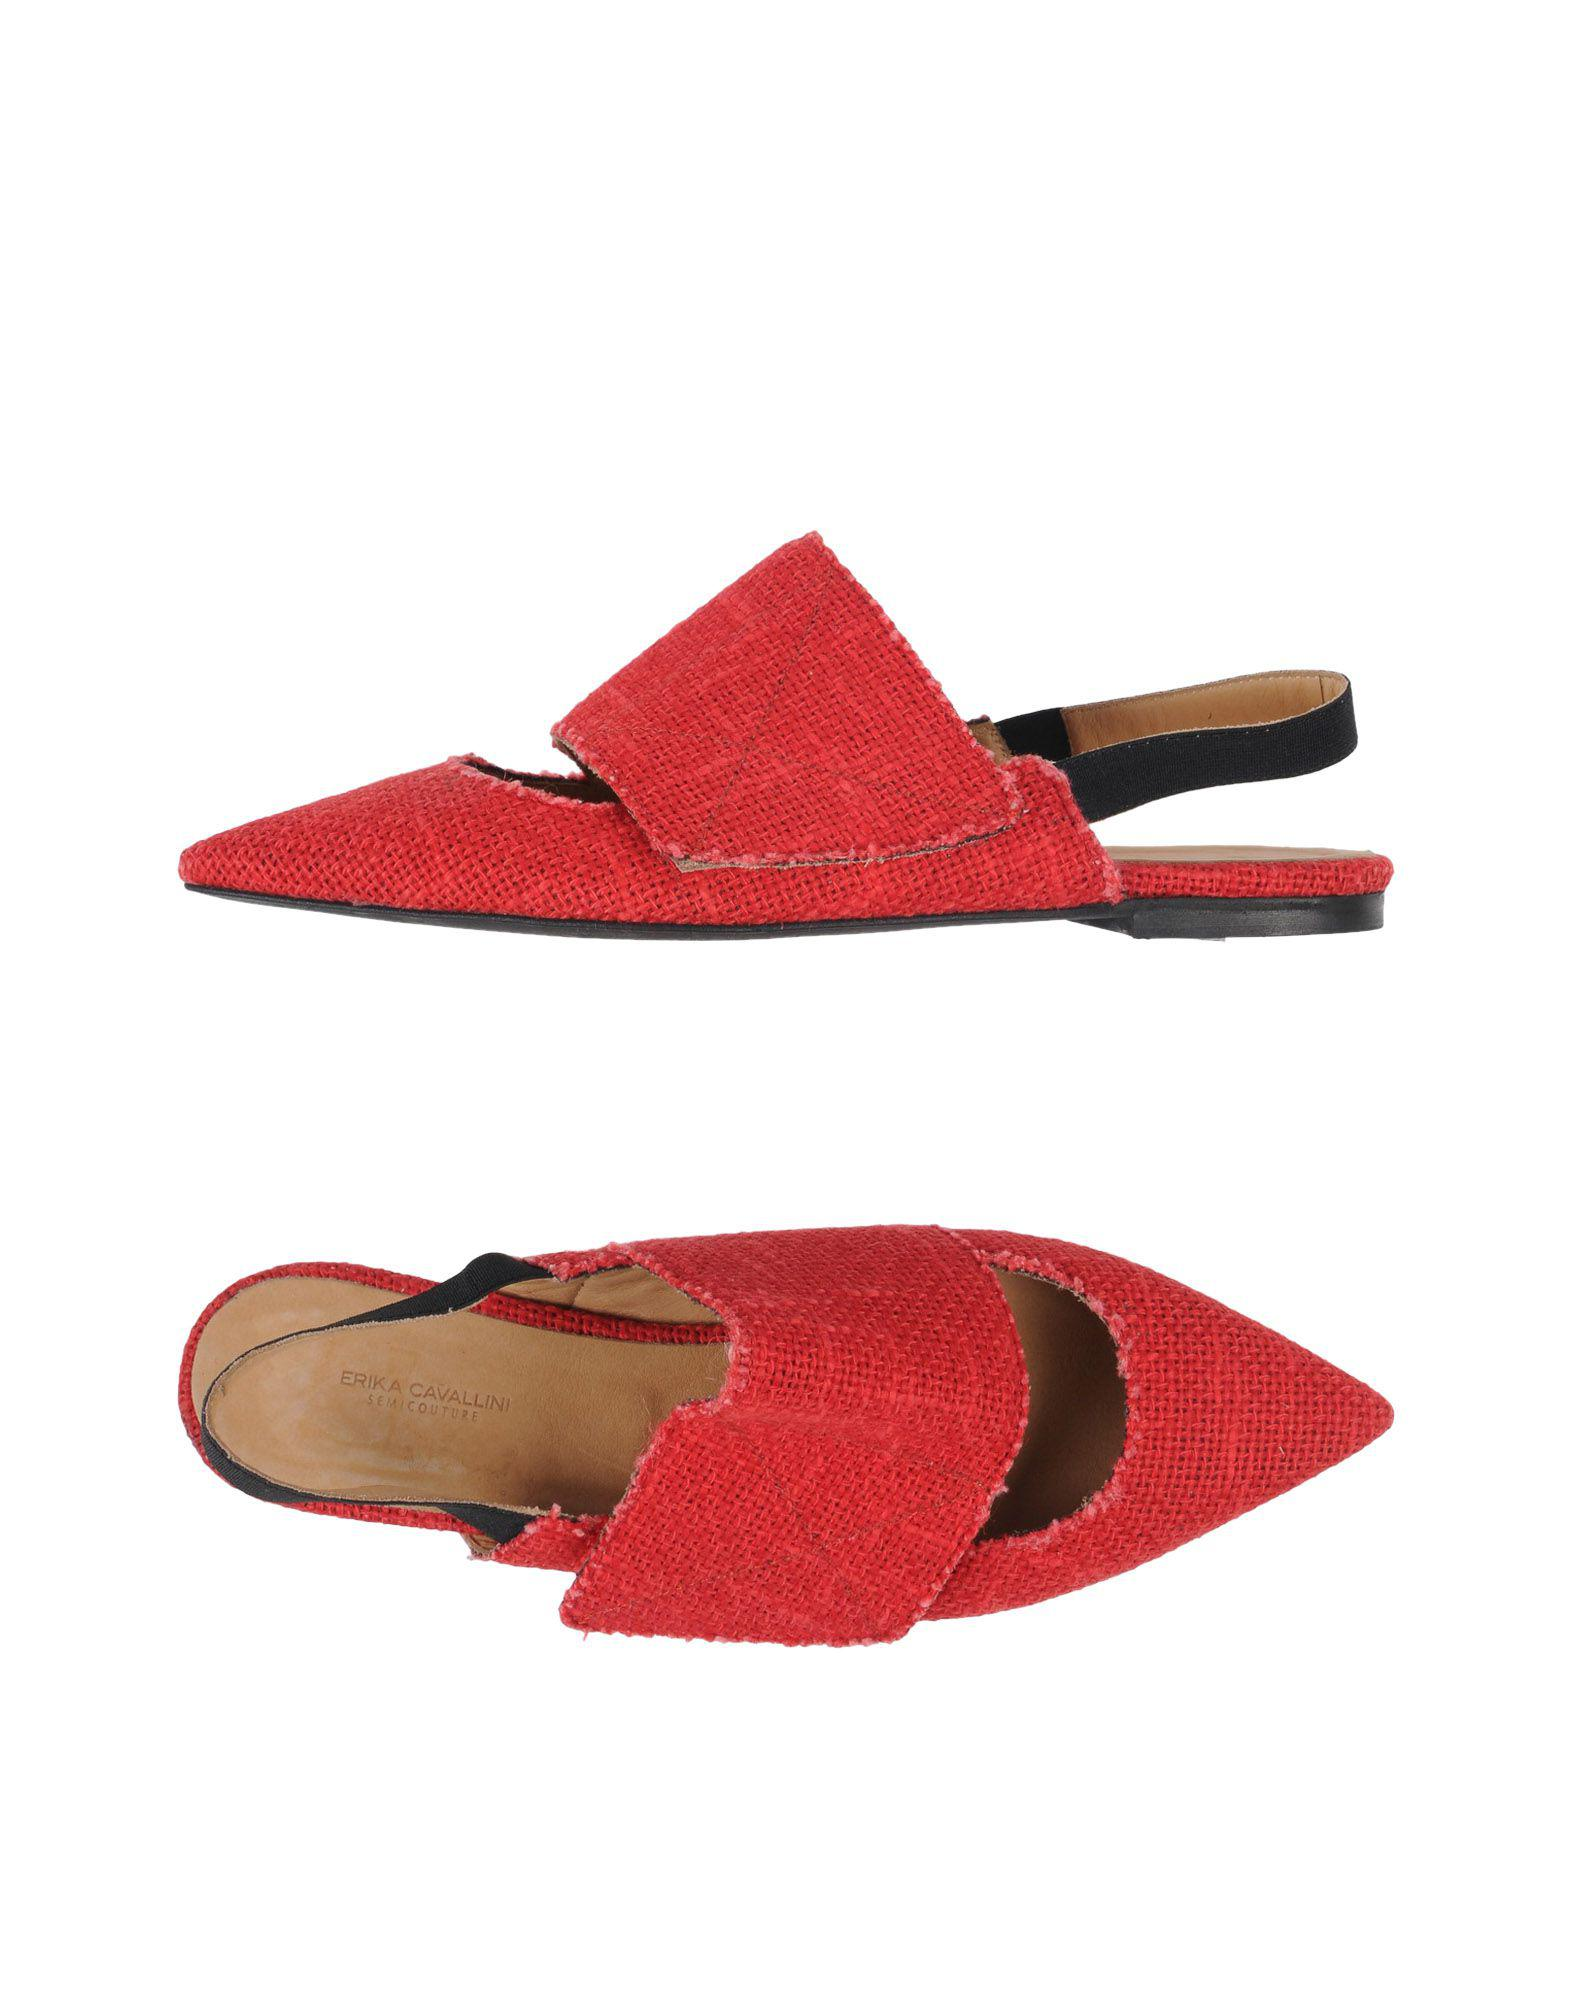 FOOTWEAR - Toe post sandals Erika Cavallini Semi Couture Cheap Sale Best Seller Big Sale Cheap Price Free Shipping Shop For z1QLaaAa75